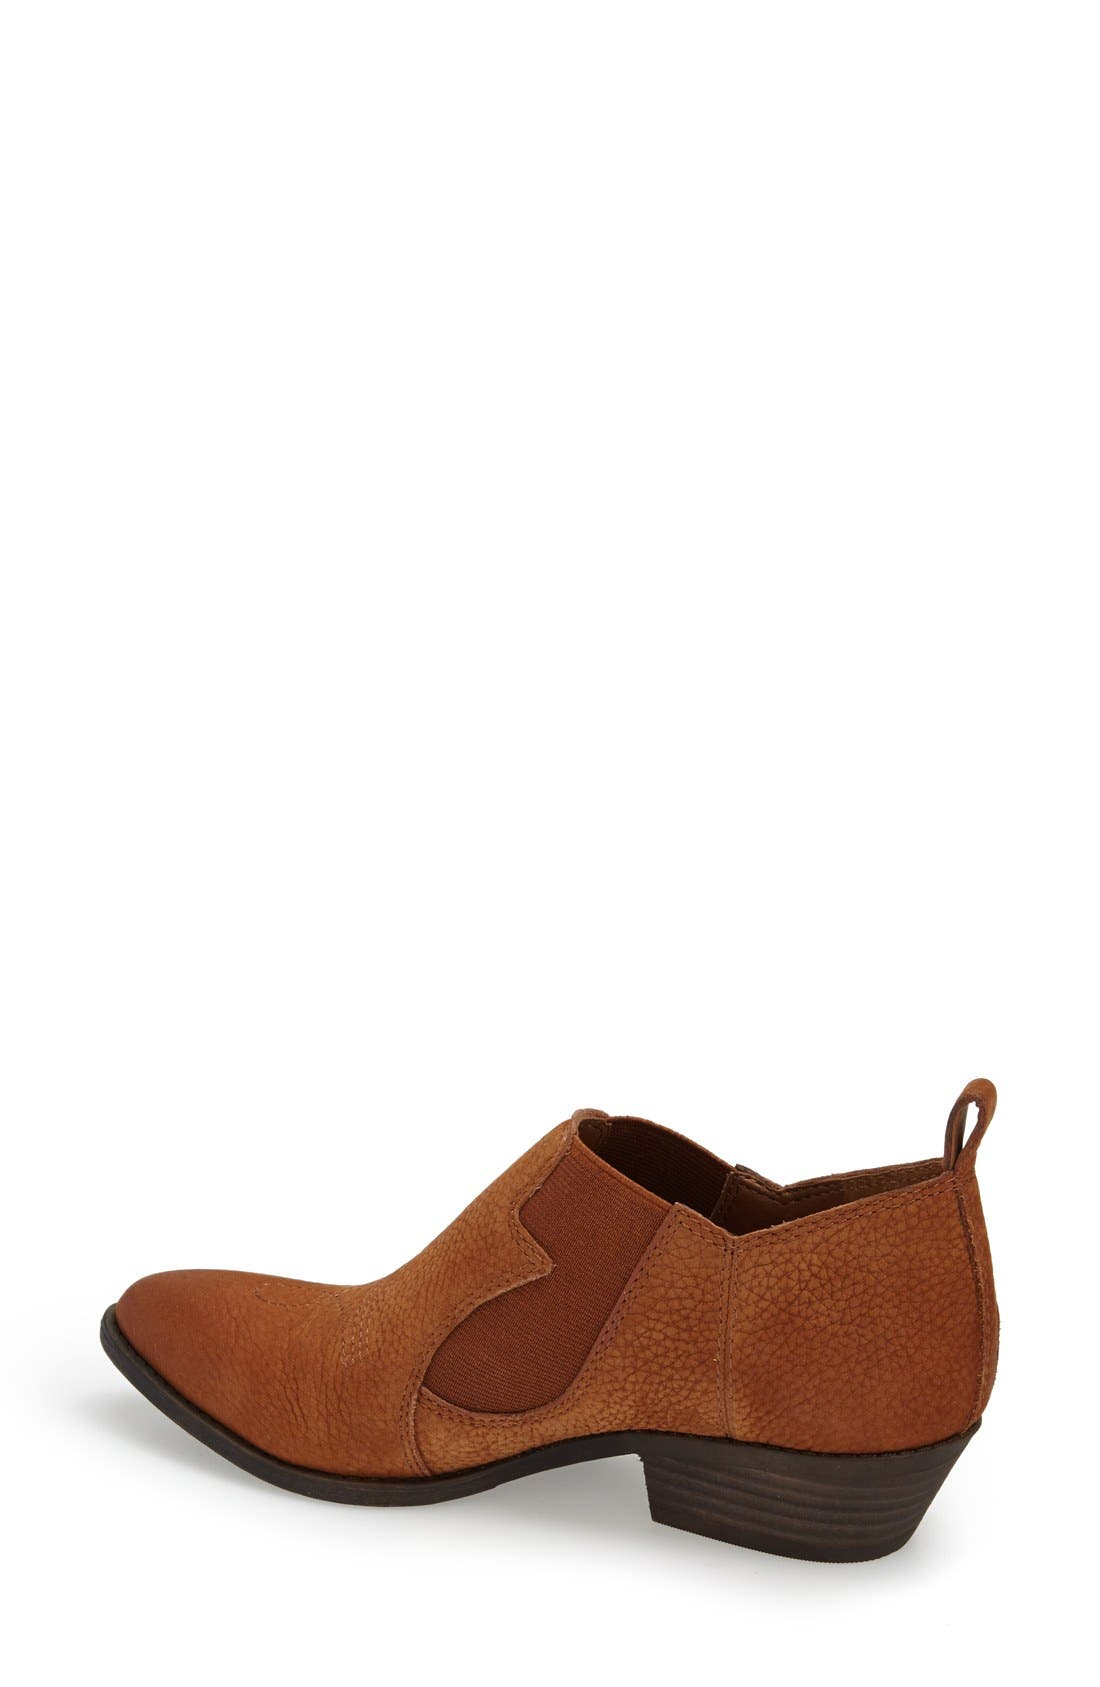 'Joelle' Western Bootie,                             Alternate thumbnail 2, color,                             Chipmunk Nubuck